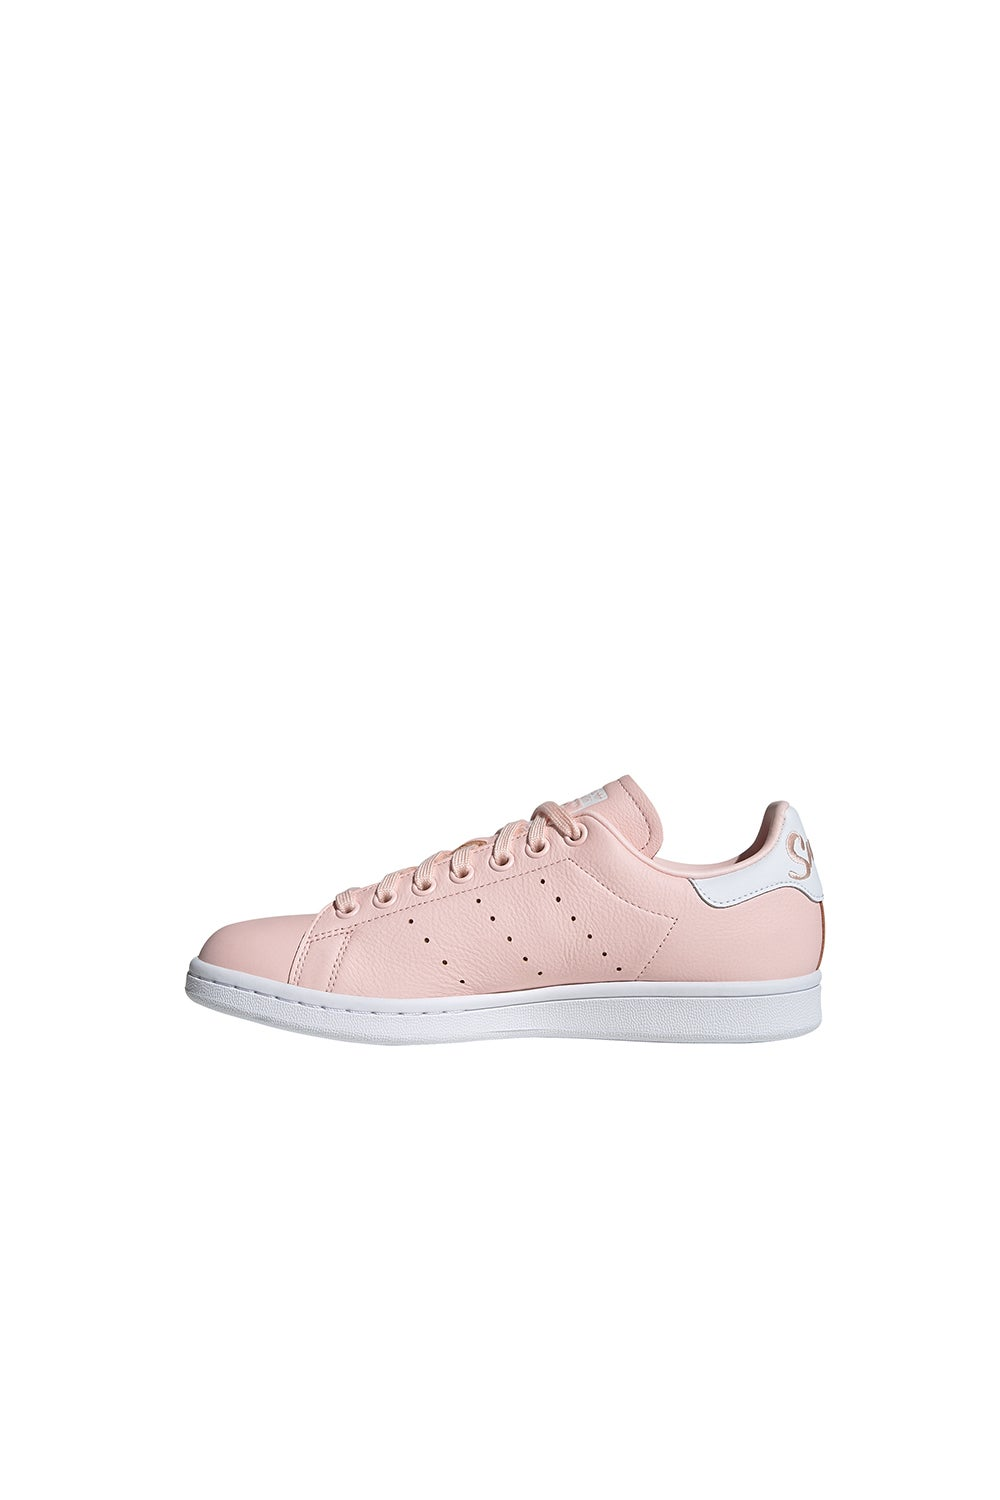 adidas Stan Smith Ice Pink/FTWR White